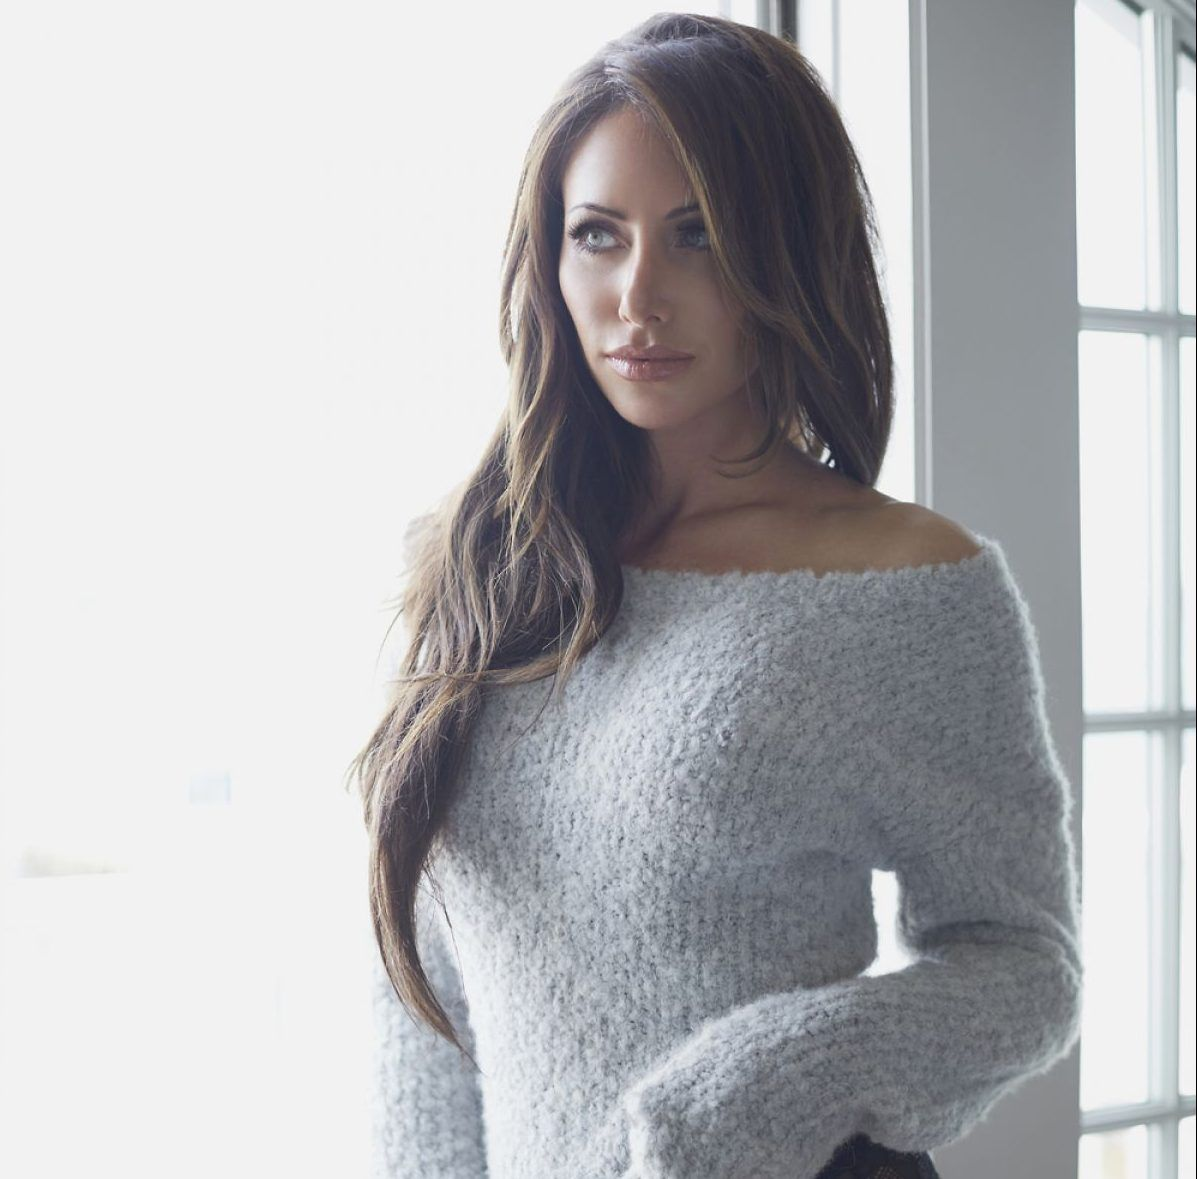 Cleavage Holly Sonders nude (85 pictures) Paparazzi, 2018, see through